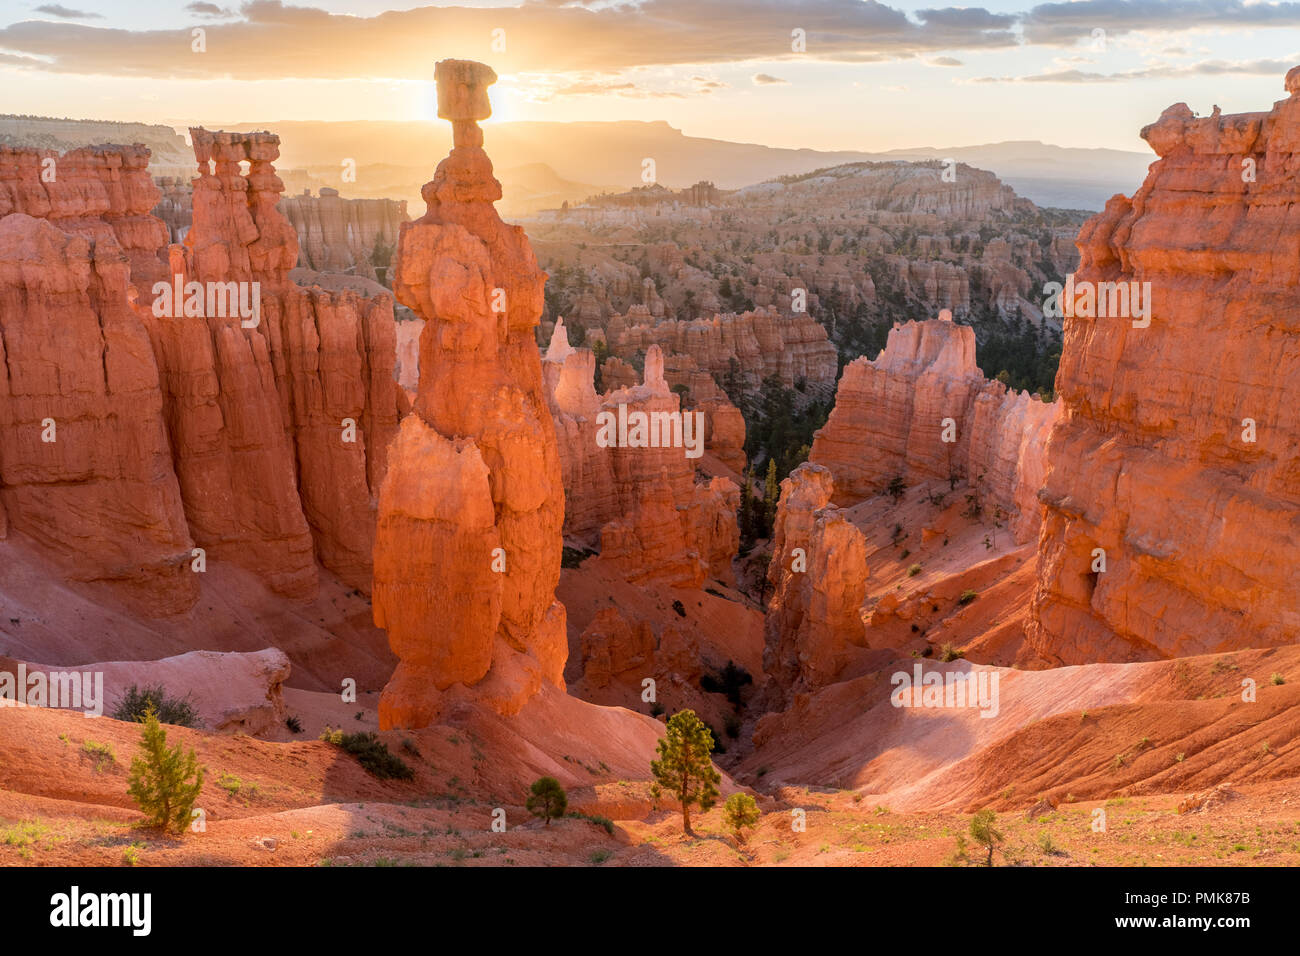 Thor's Hammer glowing in the morning light, Bryce Canyon National Park - Stock Image